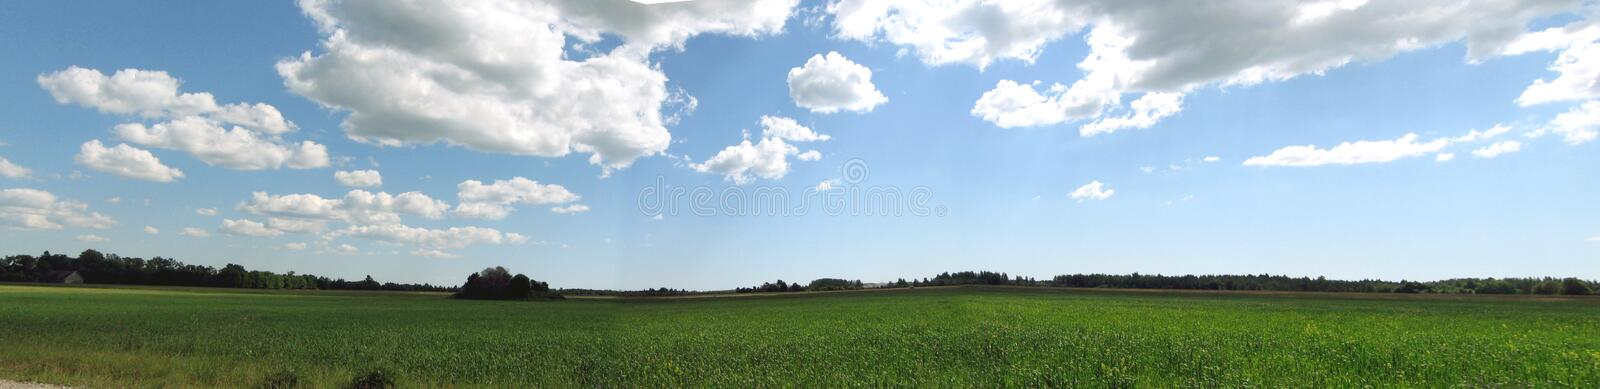 Meadow and sky panorama royalty free stock image